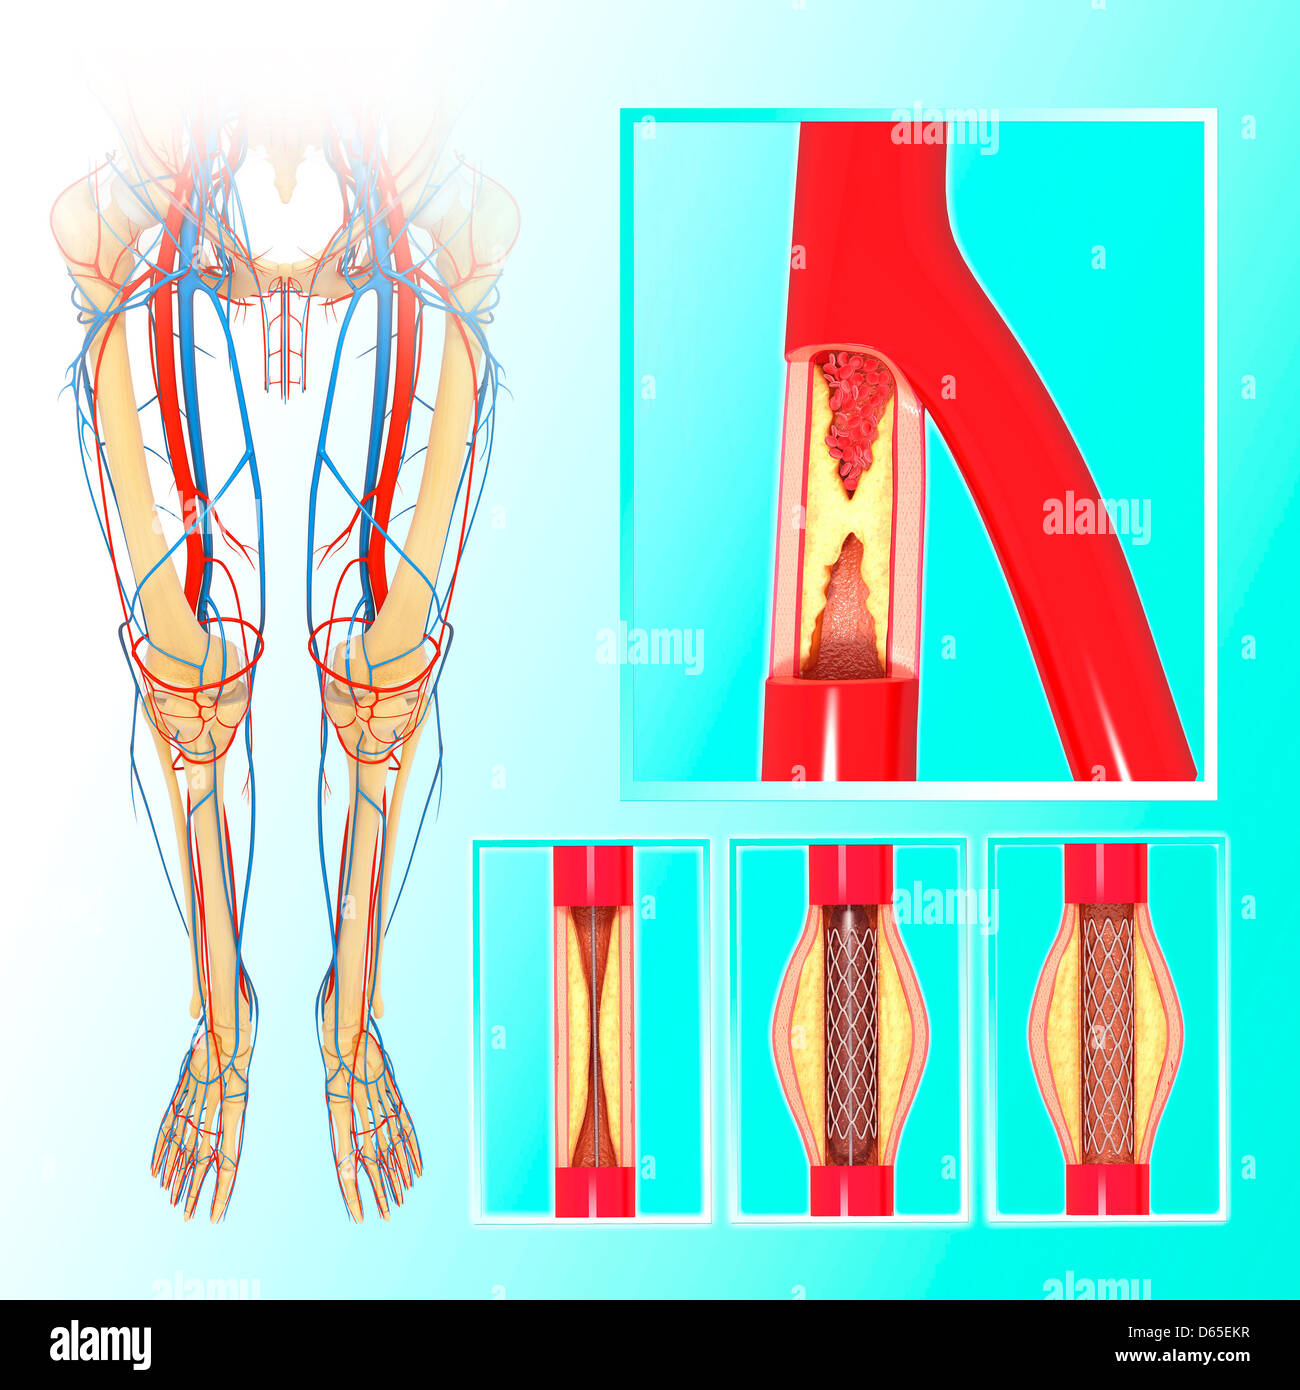 Leg Arteries Stock Photos & Leg Arteries Stock Images - Alamy